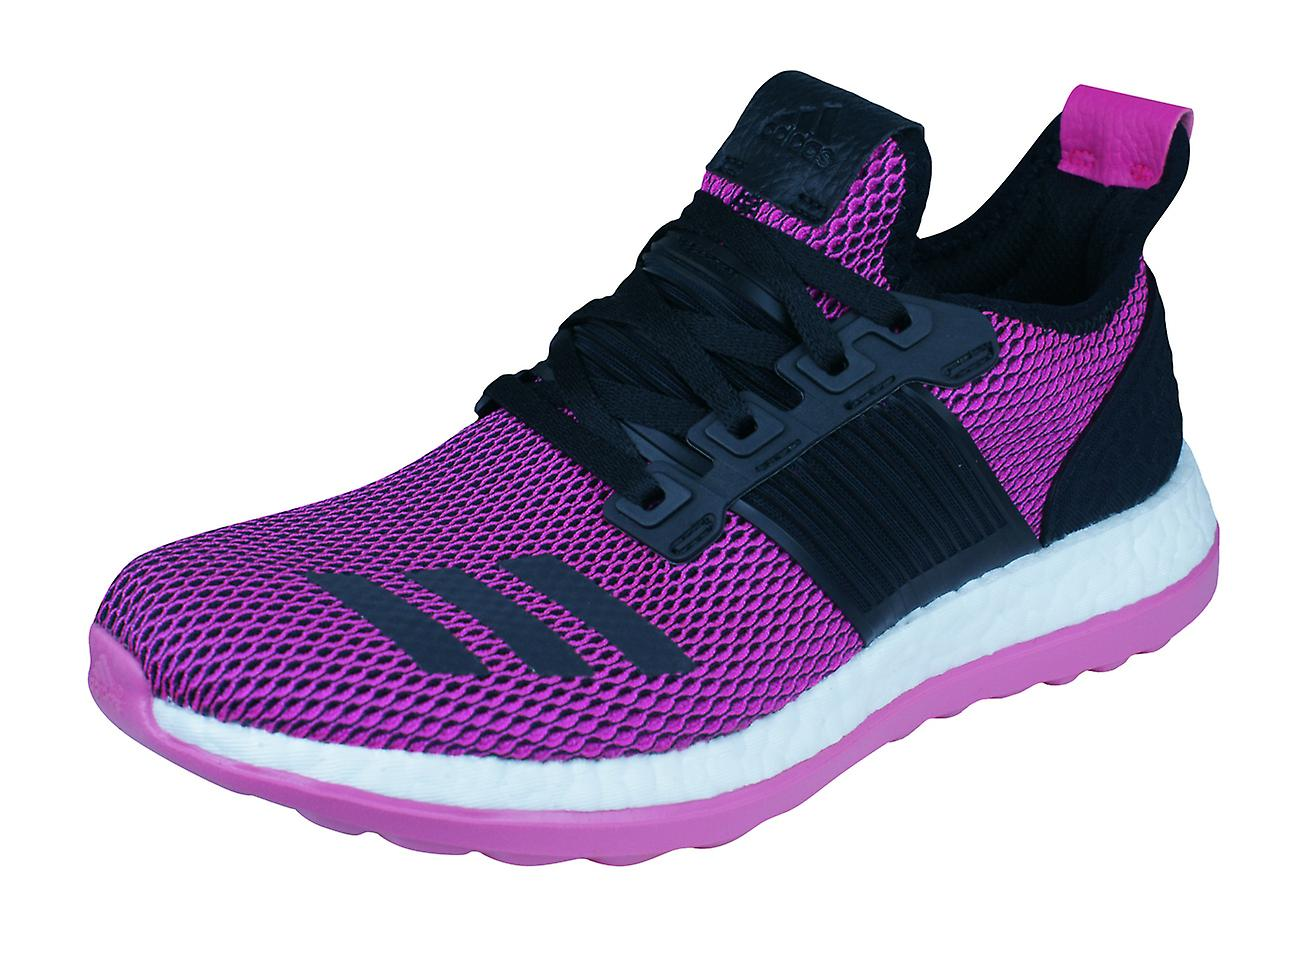 3f5abe9d5 Womens adidas Running Trainers PureBOOST ZG Training Shoes - Pink ...